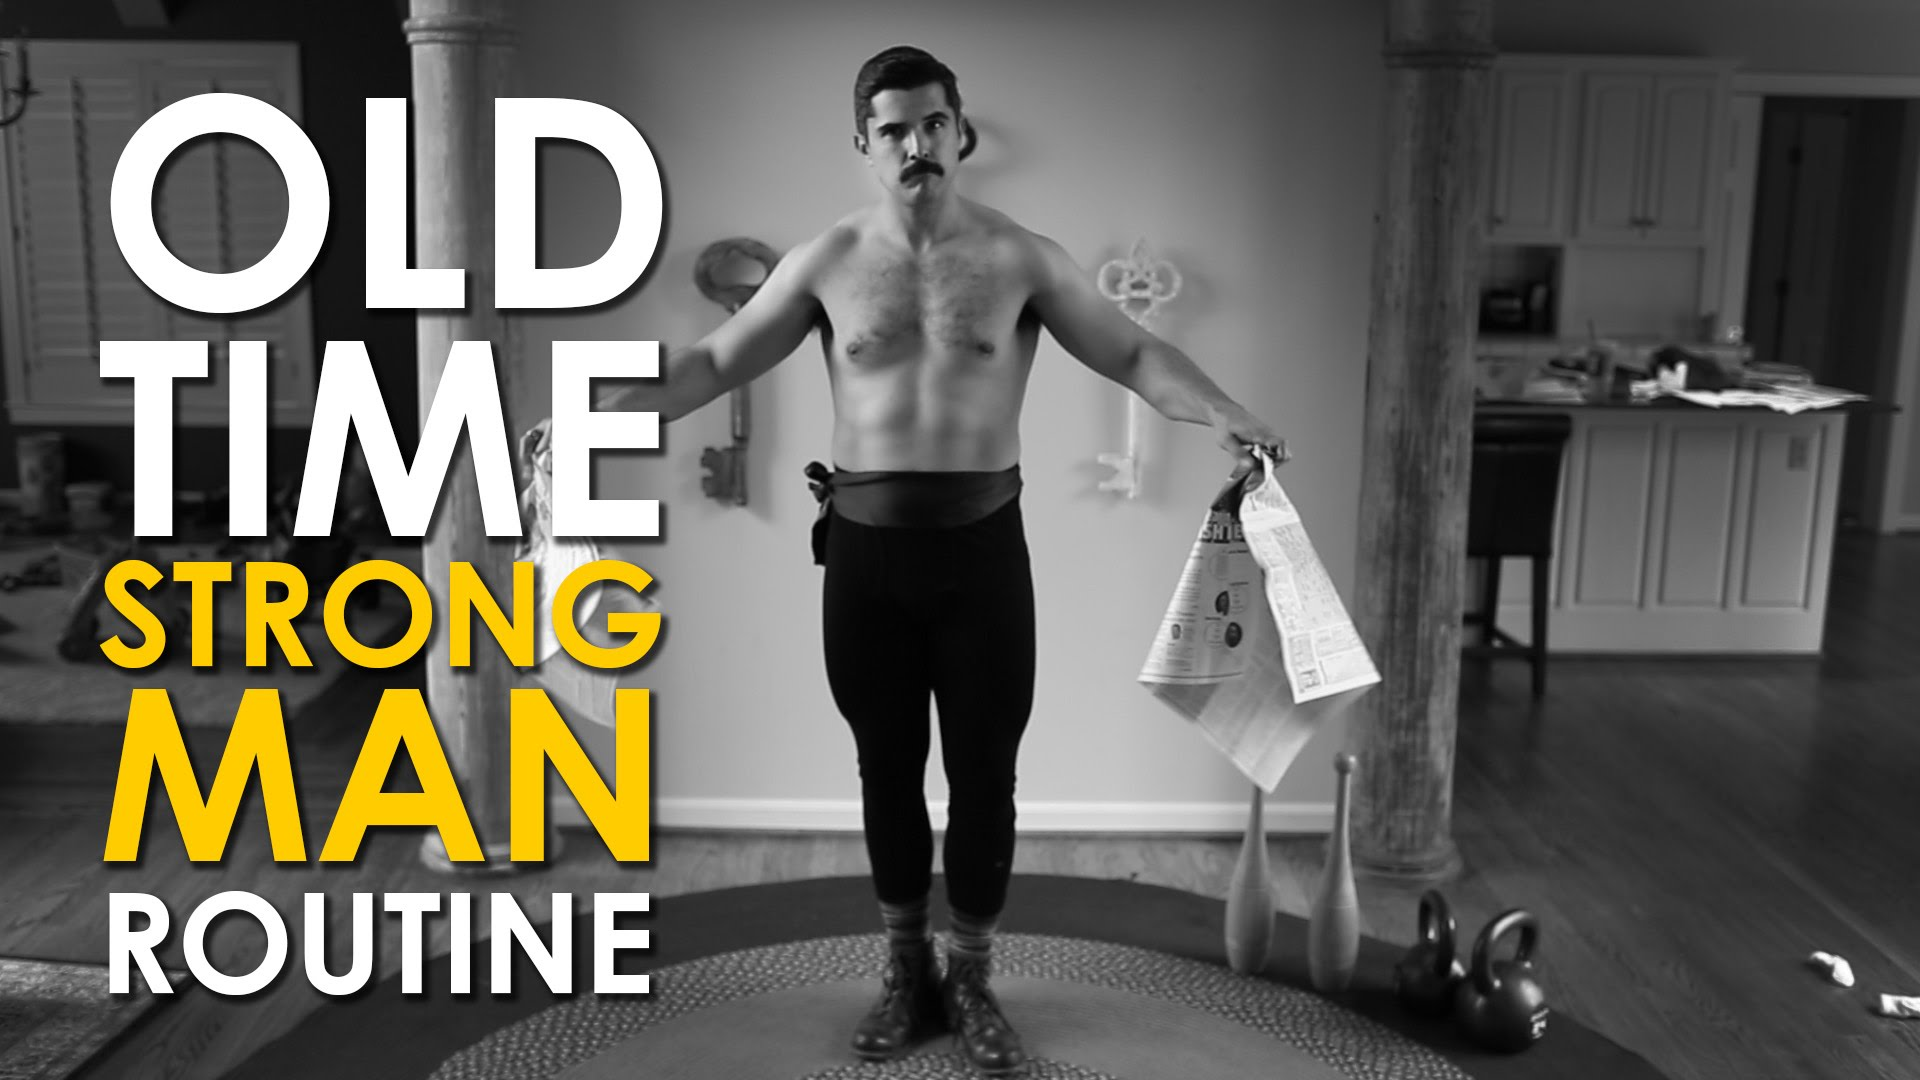 15-Minute Morning Fitness Routine | The Art of Manliness